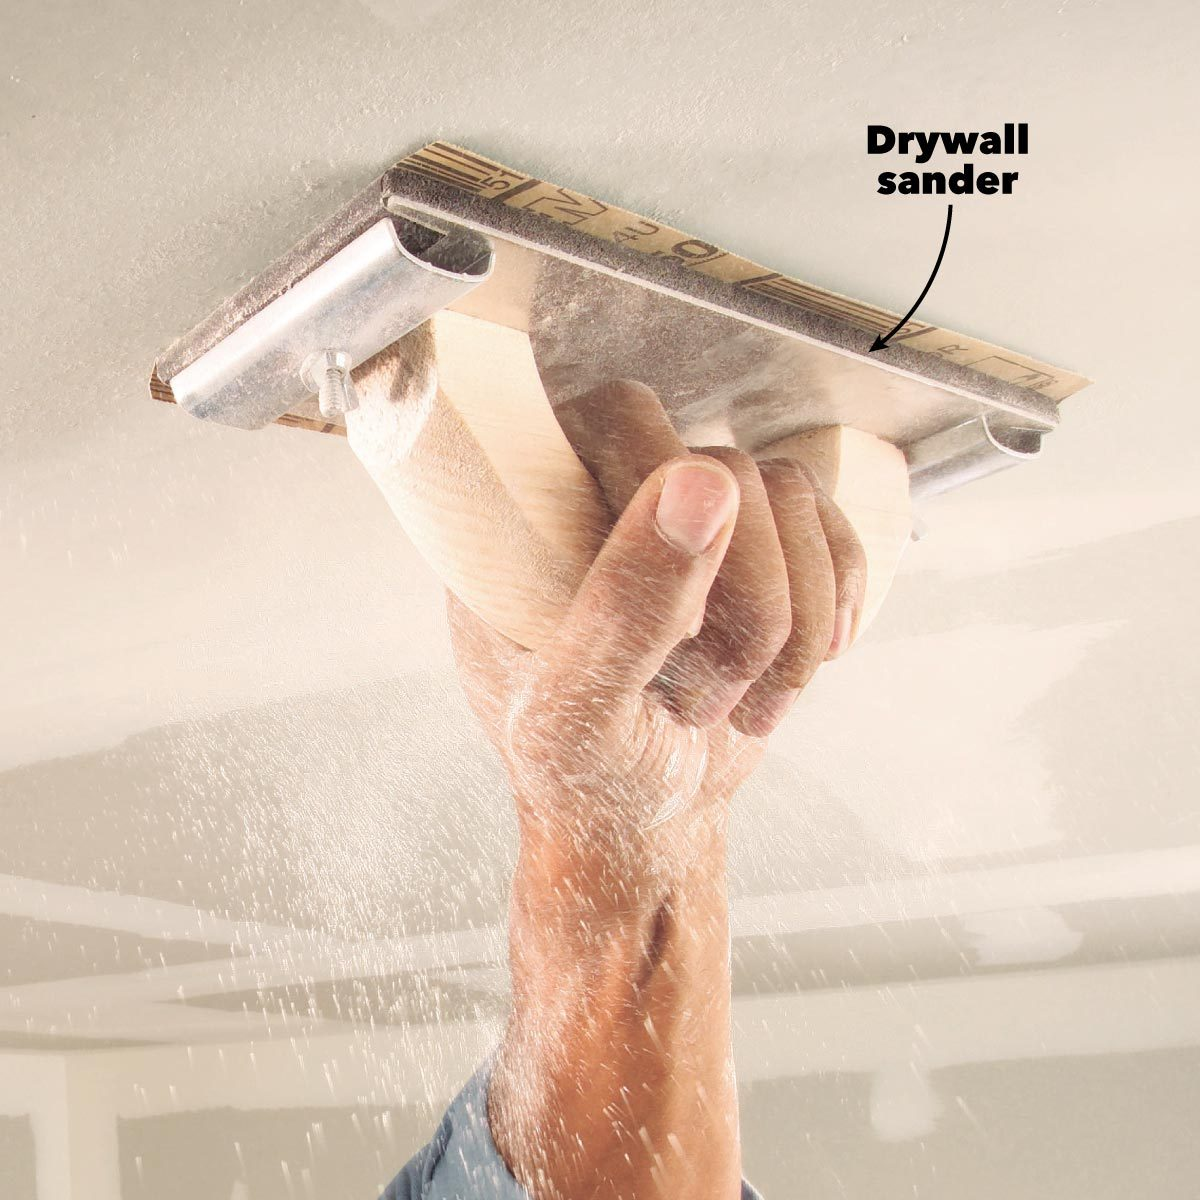 drywall sander finishing